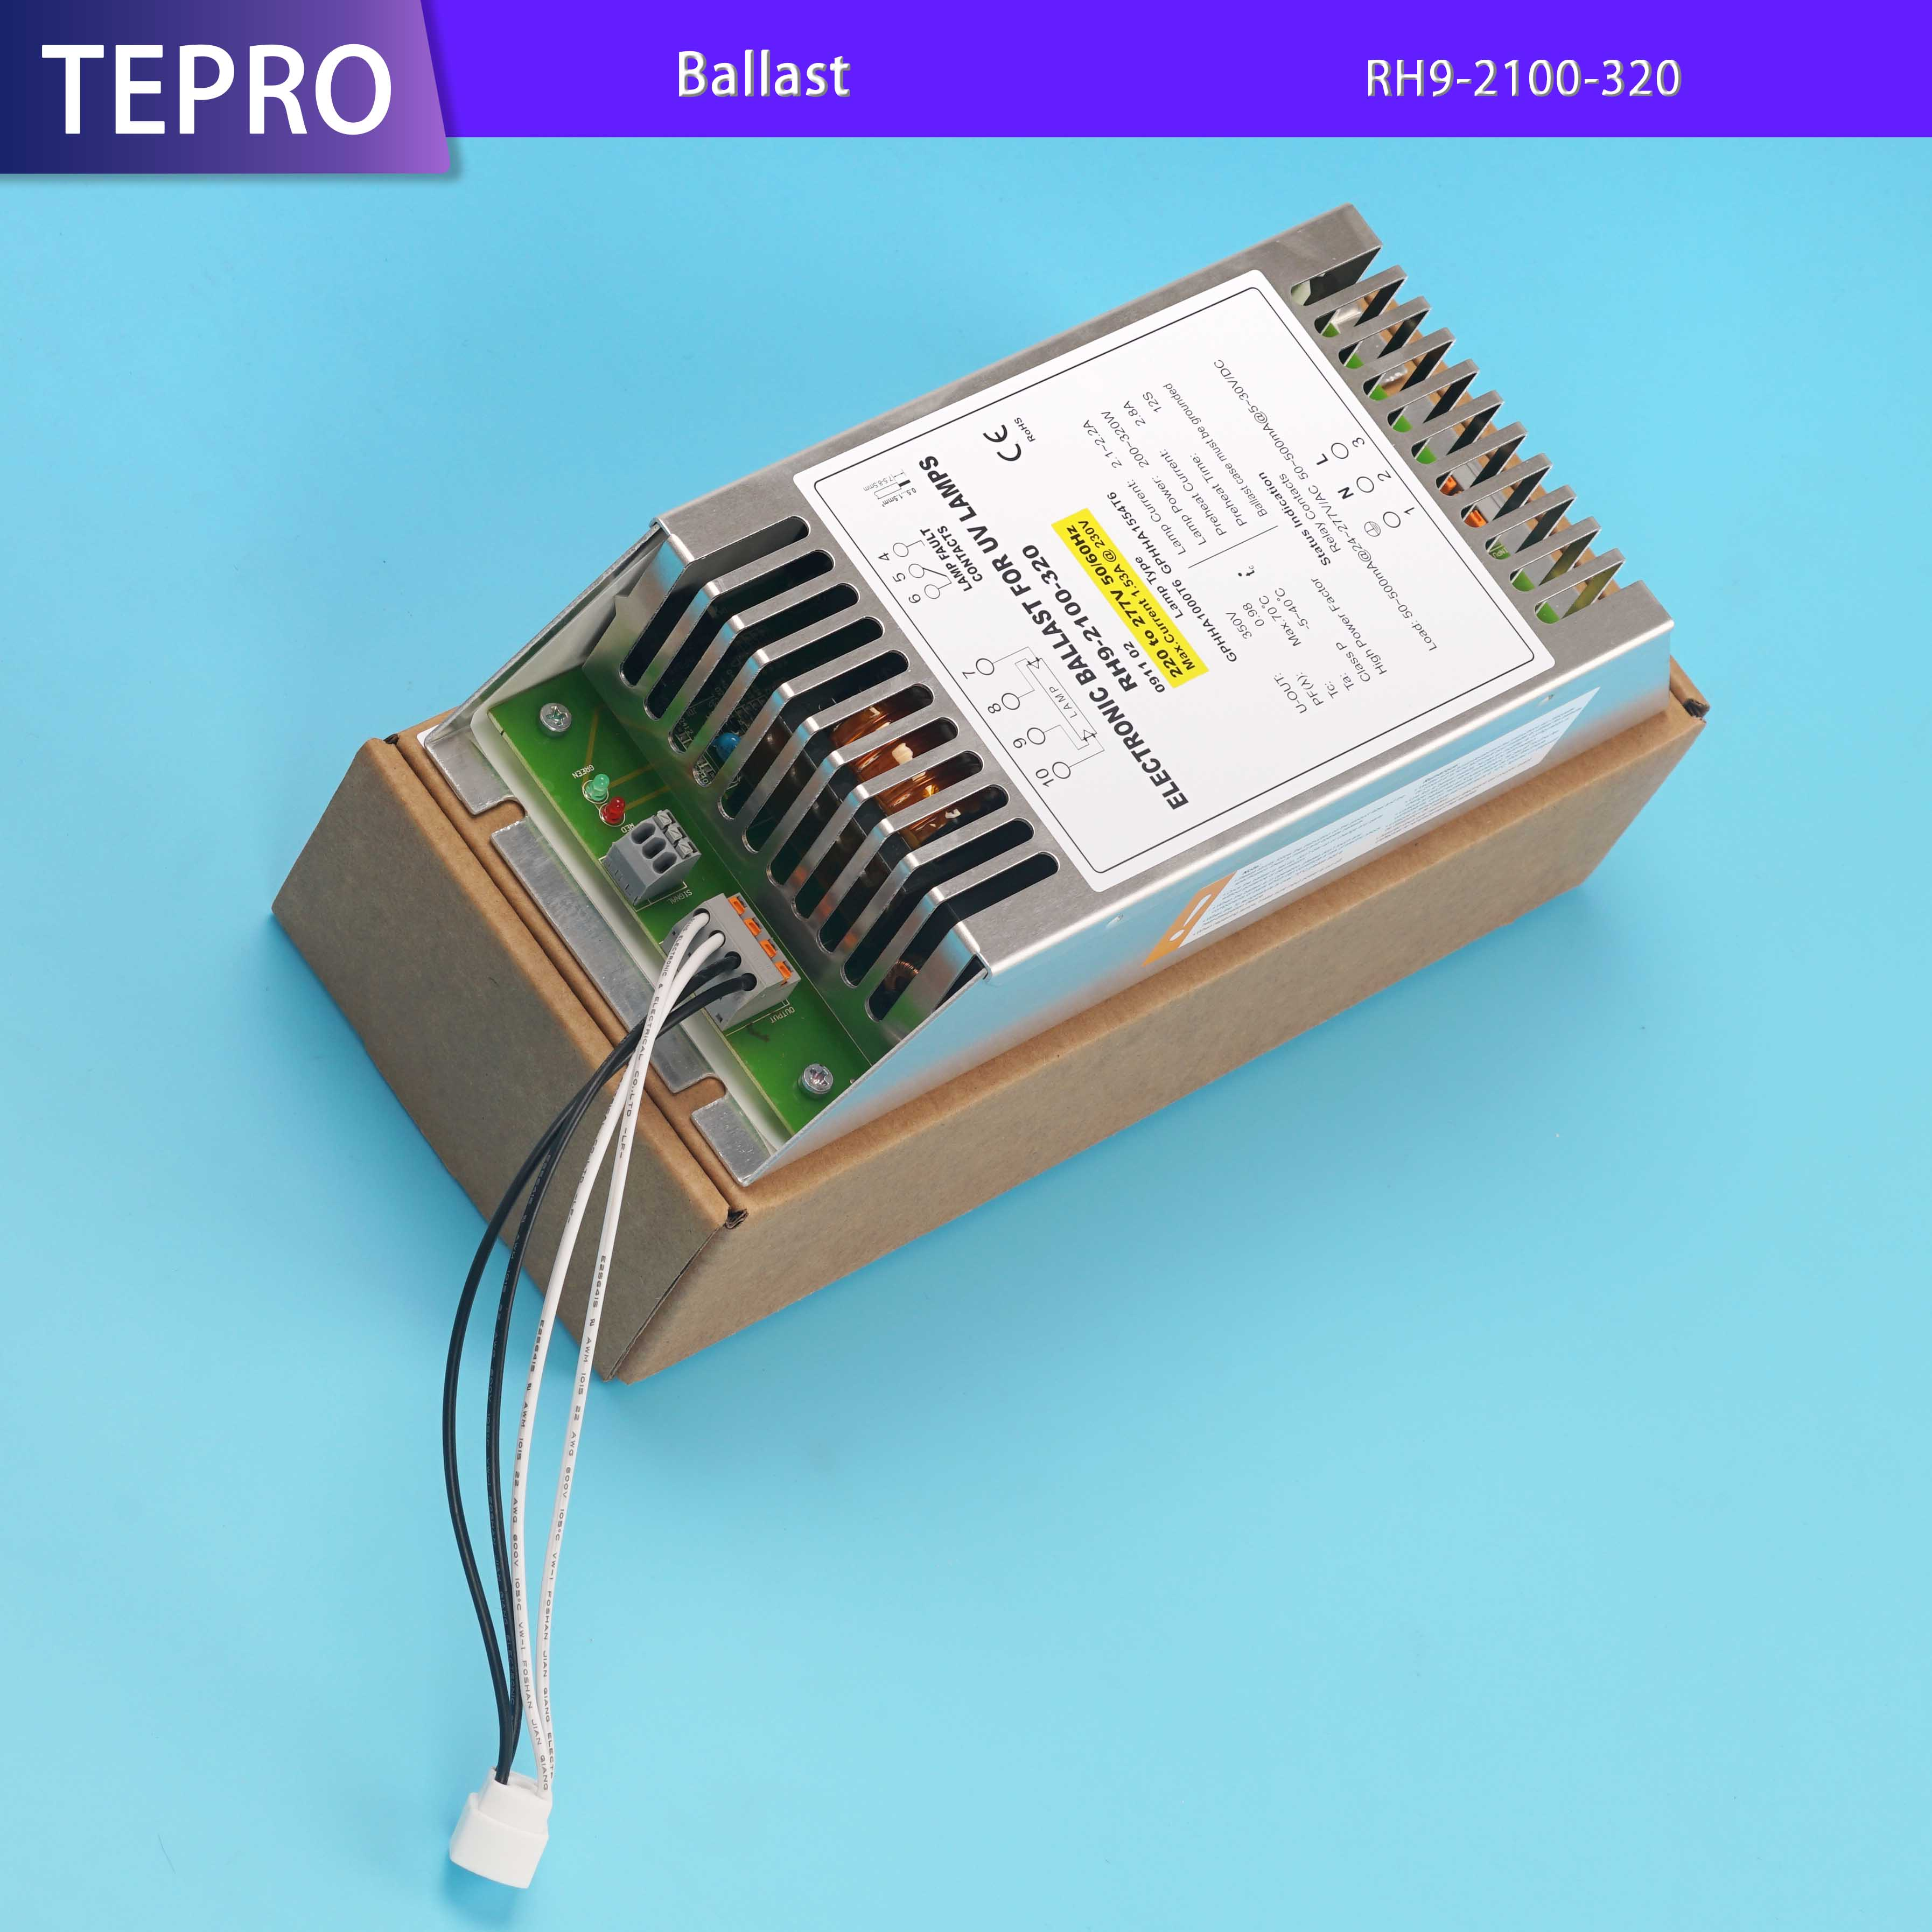 Tepro 4 pins uv air filter design for pools-Tepro-img